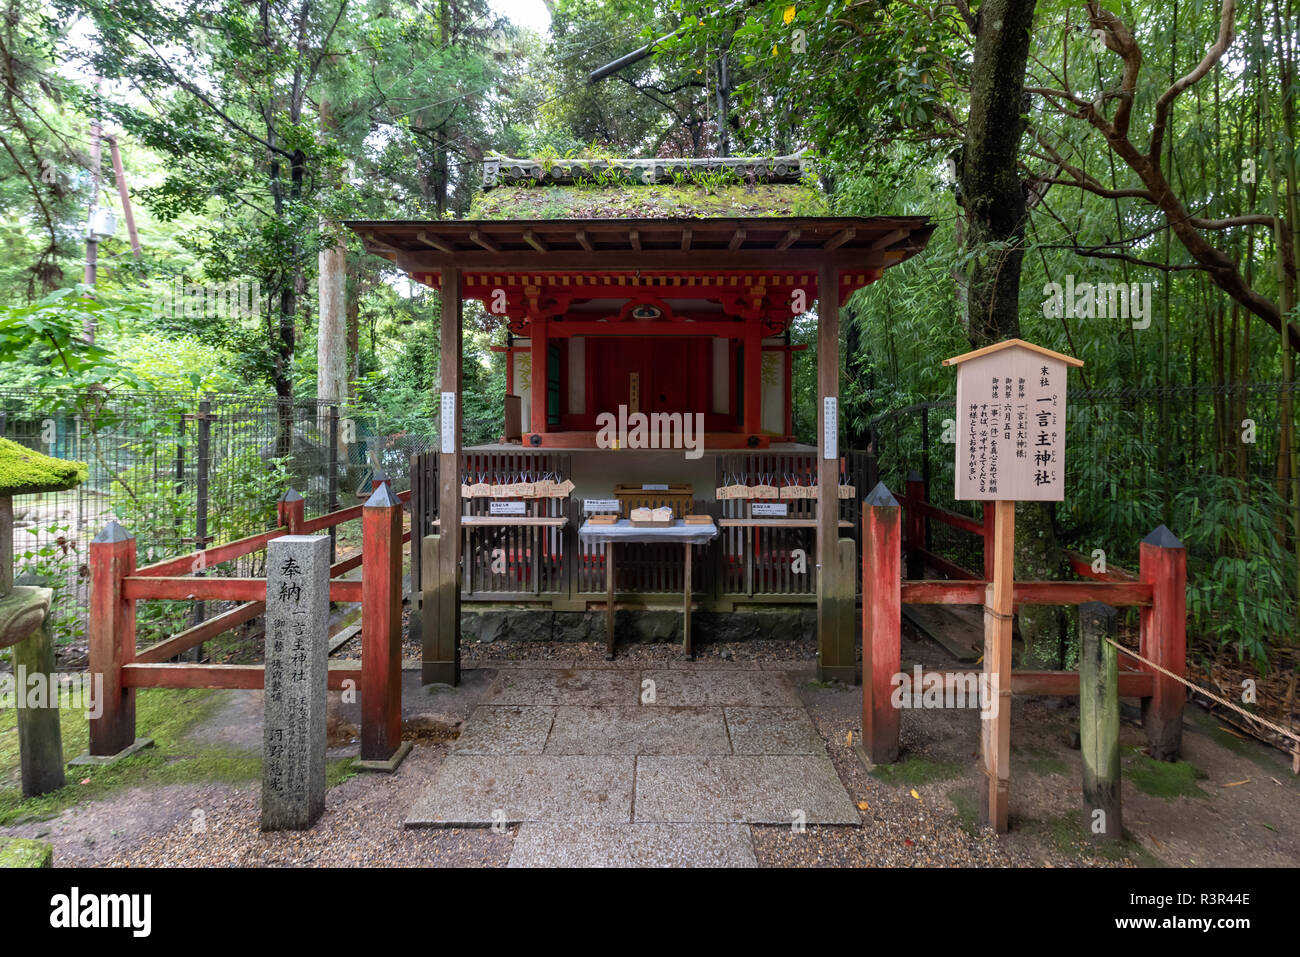 View of the Kasuga-taisha Grand Shrine , a historic shrine in Nara, Japan. It is a UNESCO World Heritage Site as part of the Historic Monuments of Anc - Stock Image